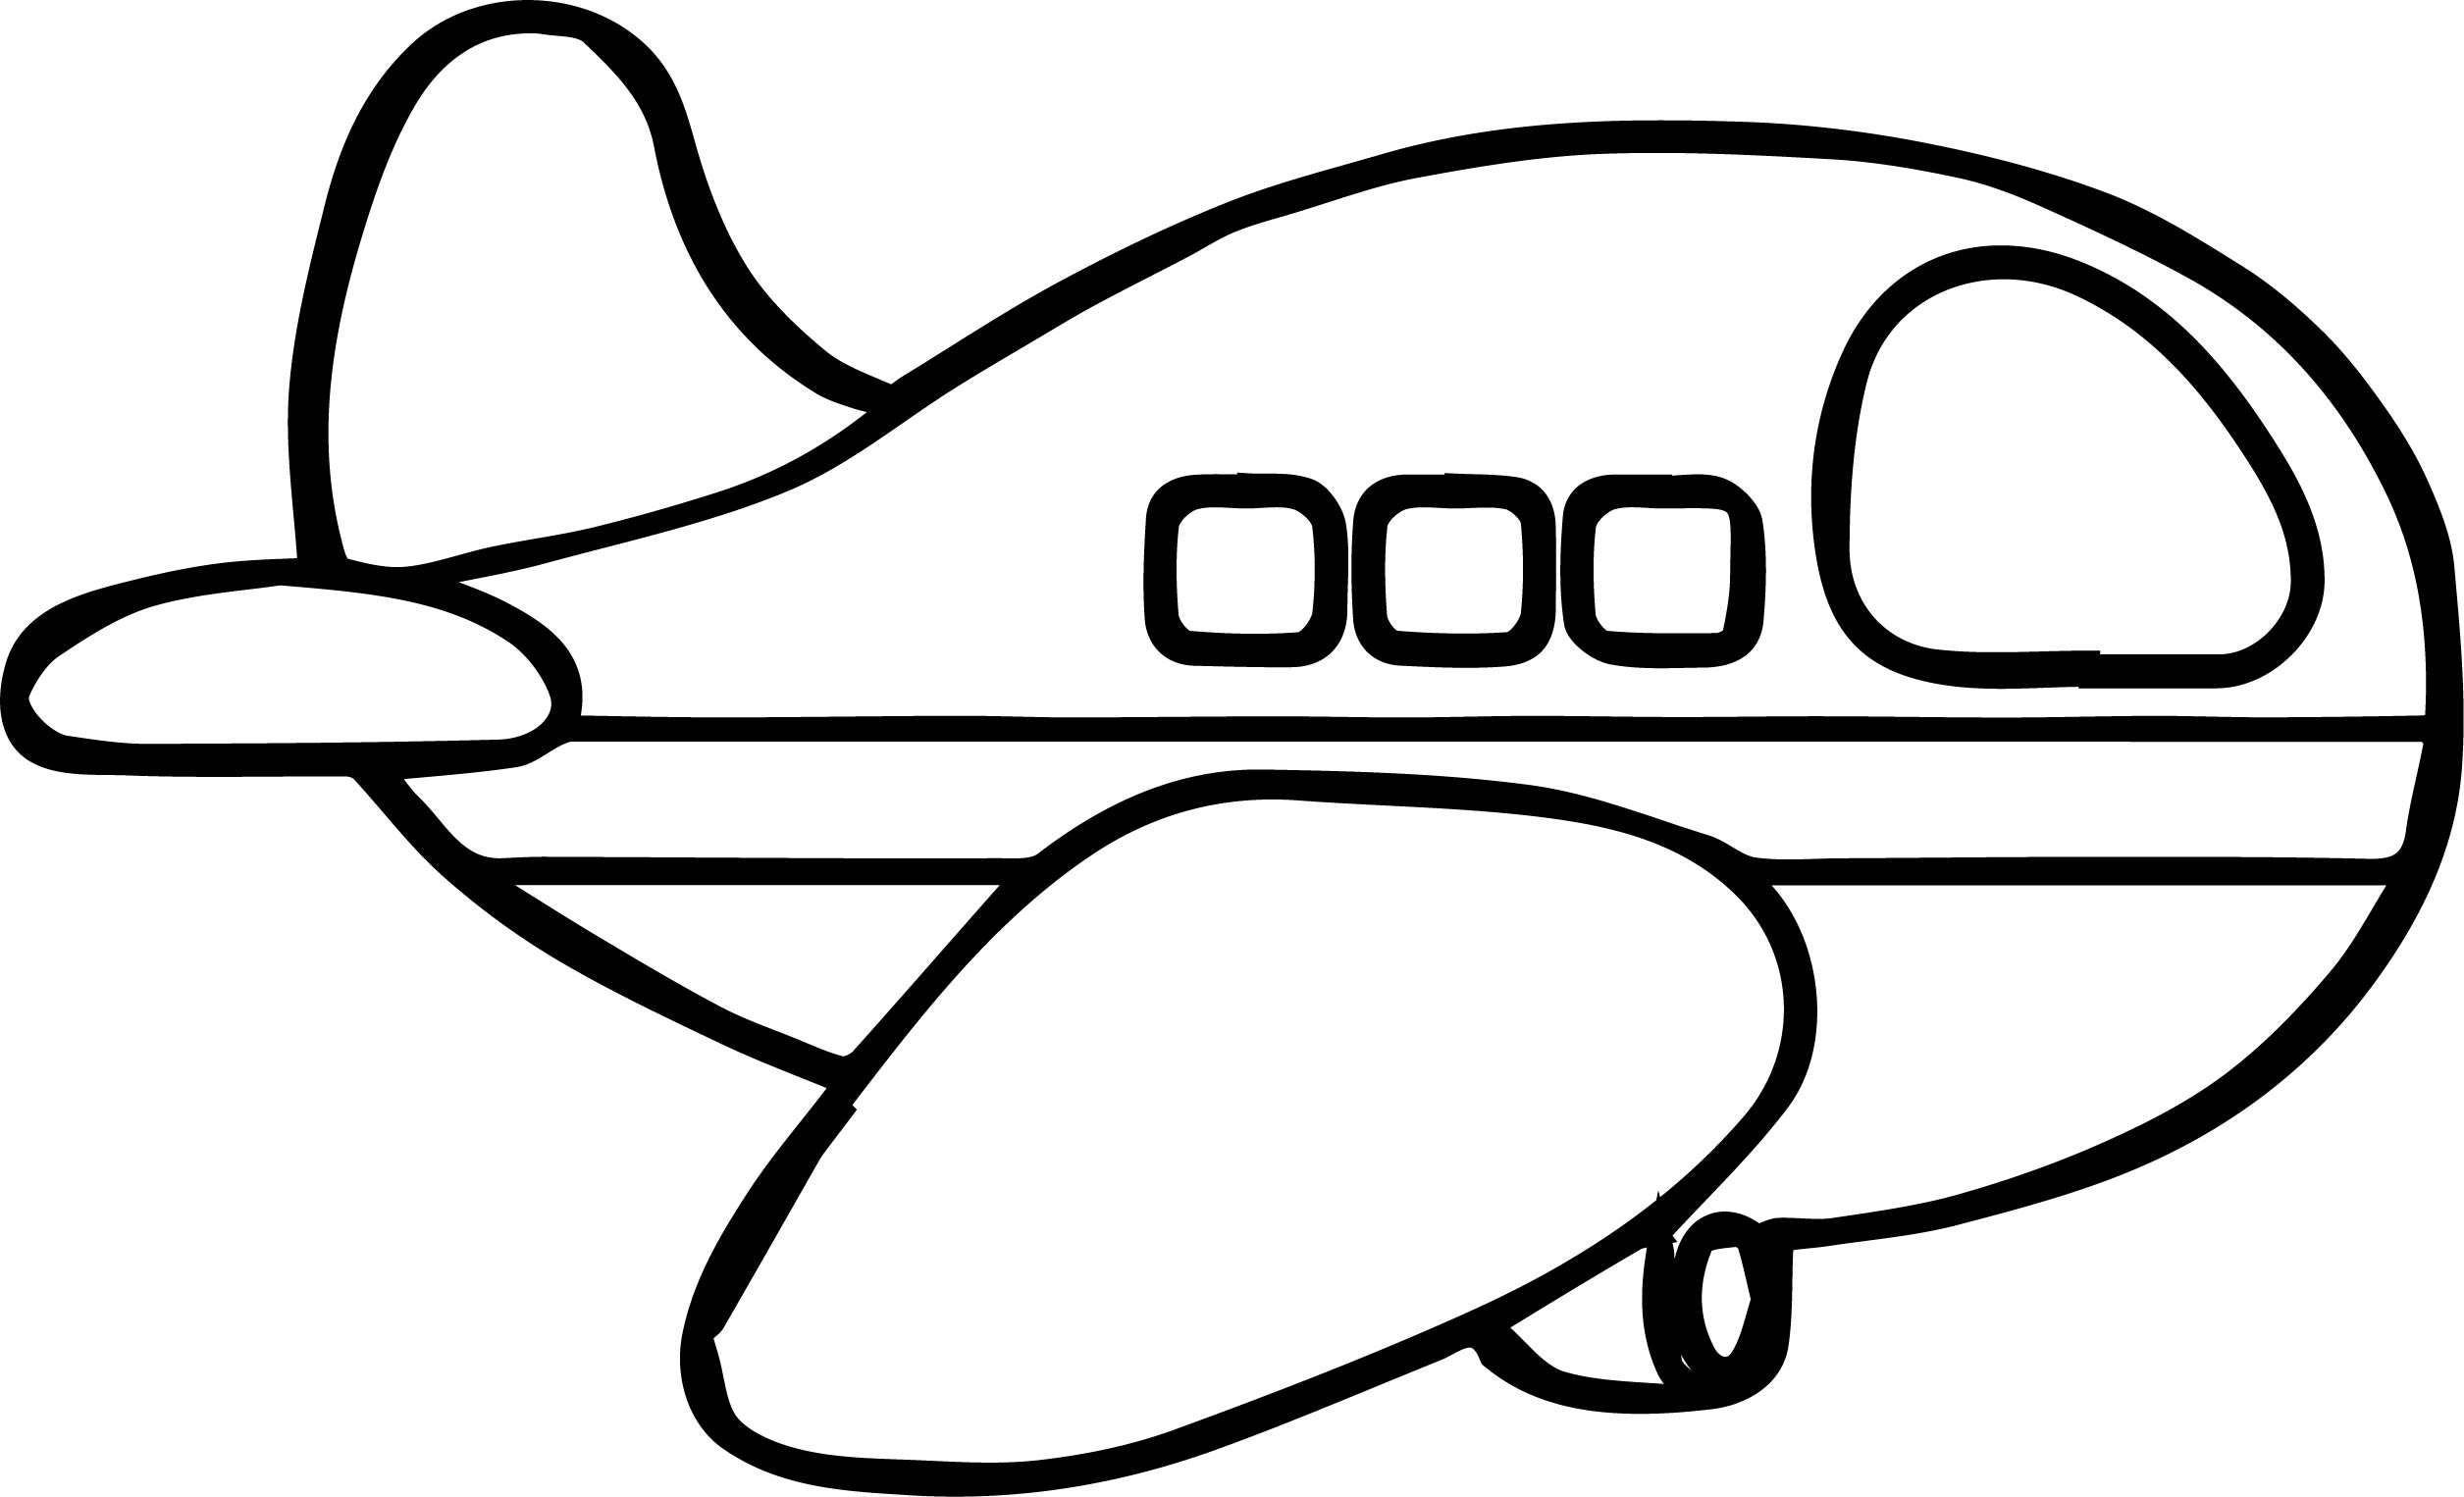 airplane clipart coloring airplane coloring pages to download and print for free airplane clipart coloring